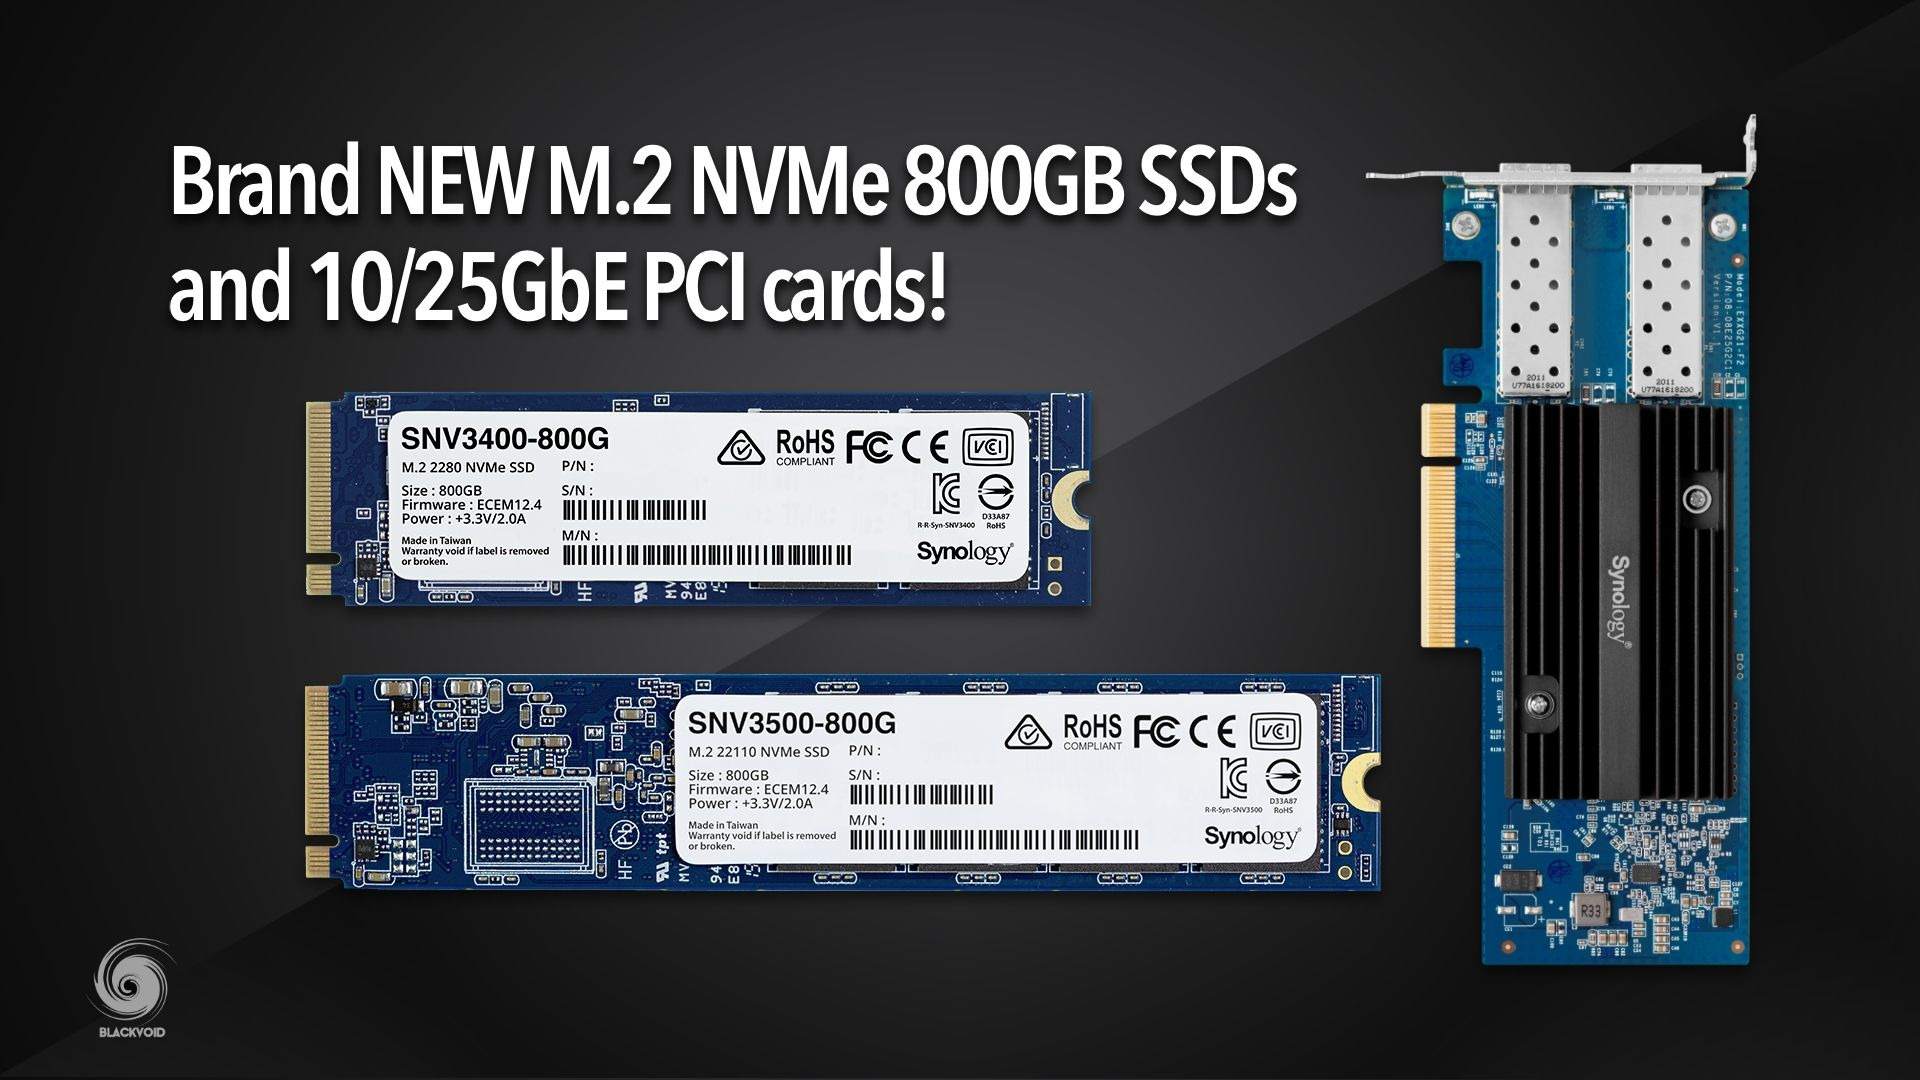 NEW M.2 NVMe SNV3000 800G drives and 10/25Gbe PCI add-in cards